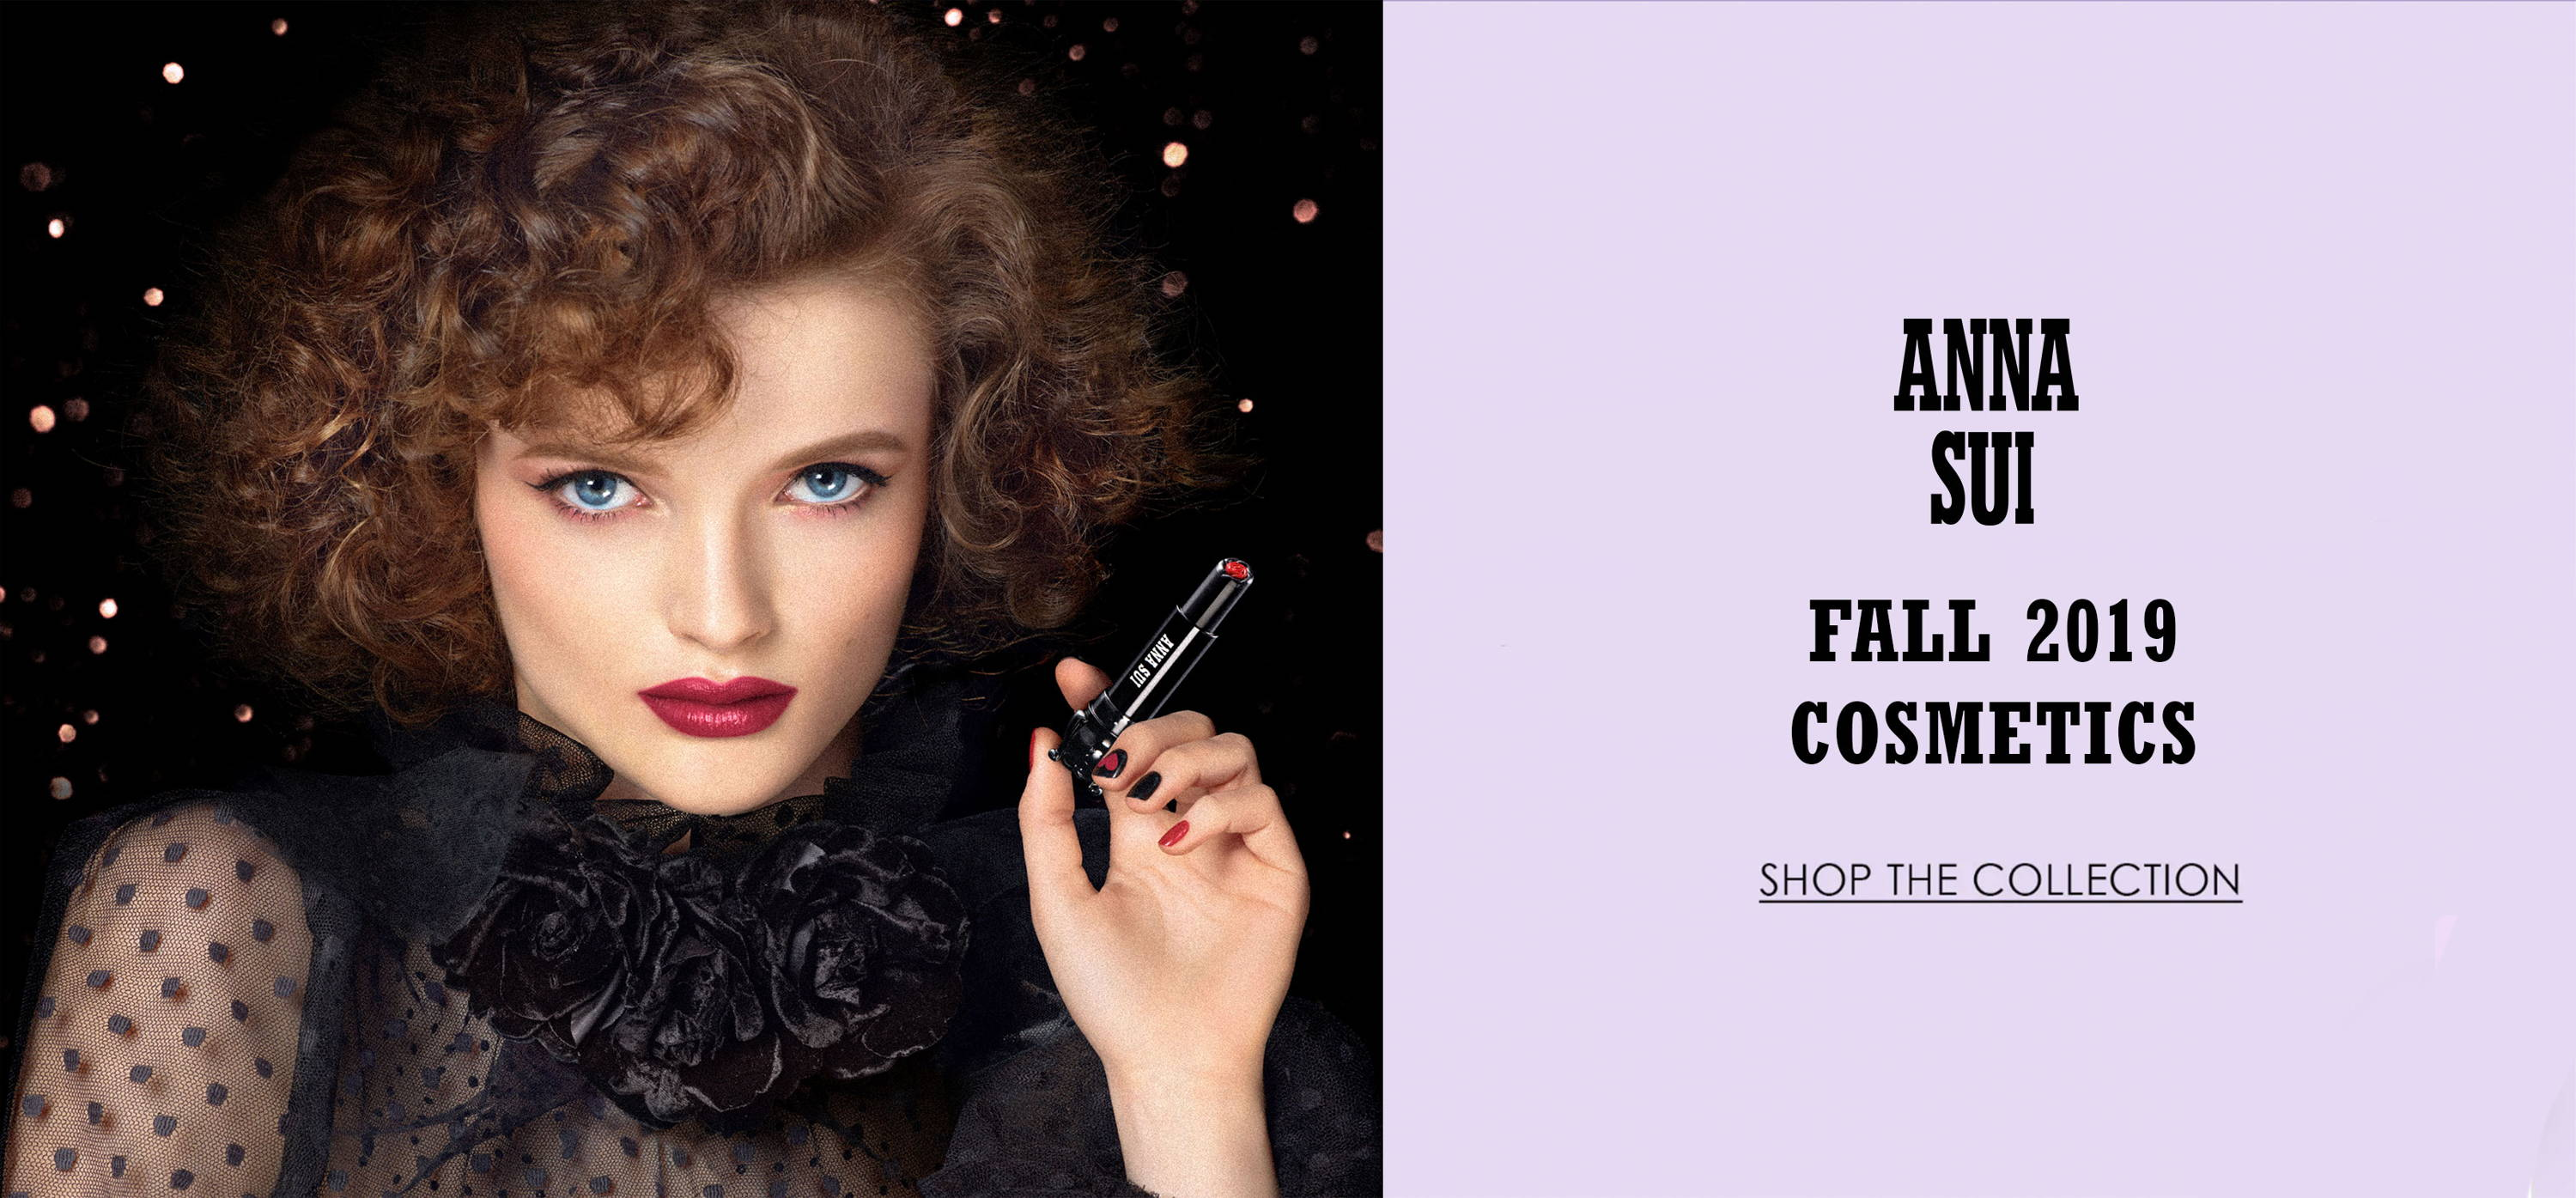 Anna Sui Fall 2019 cosmetics photo starring a model holding lipstick. Click to shop the collection